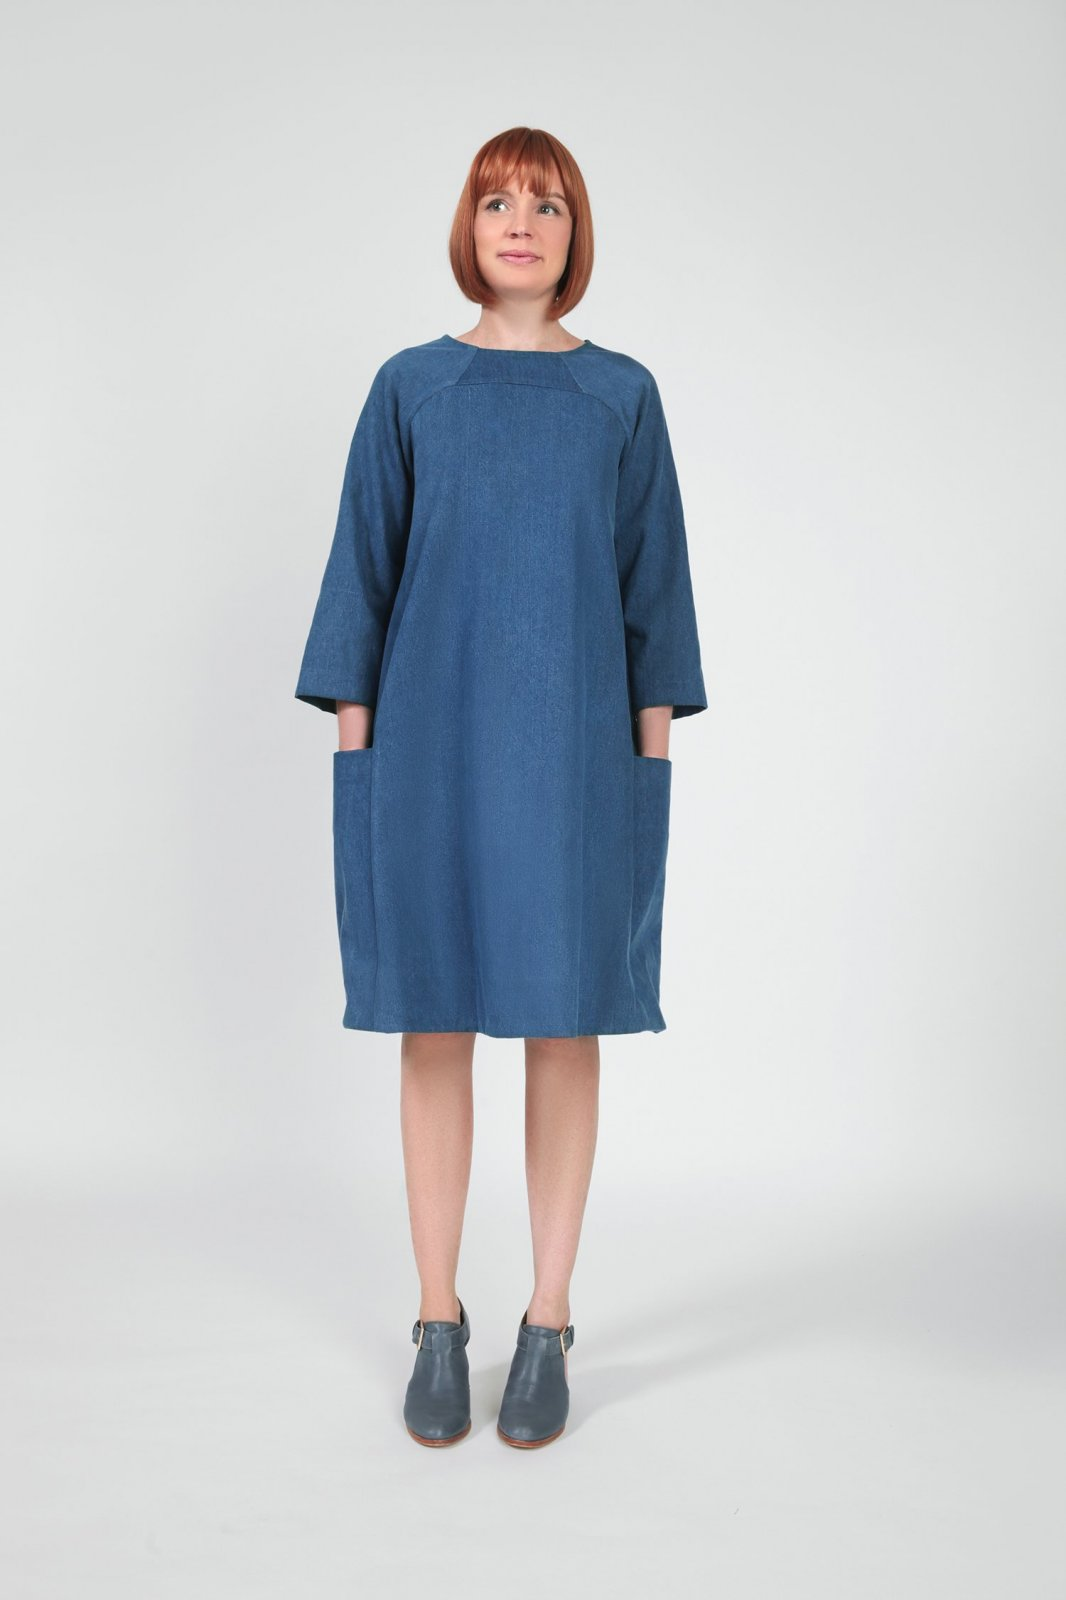 Pattern Rushcutter Dress In the Folds